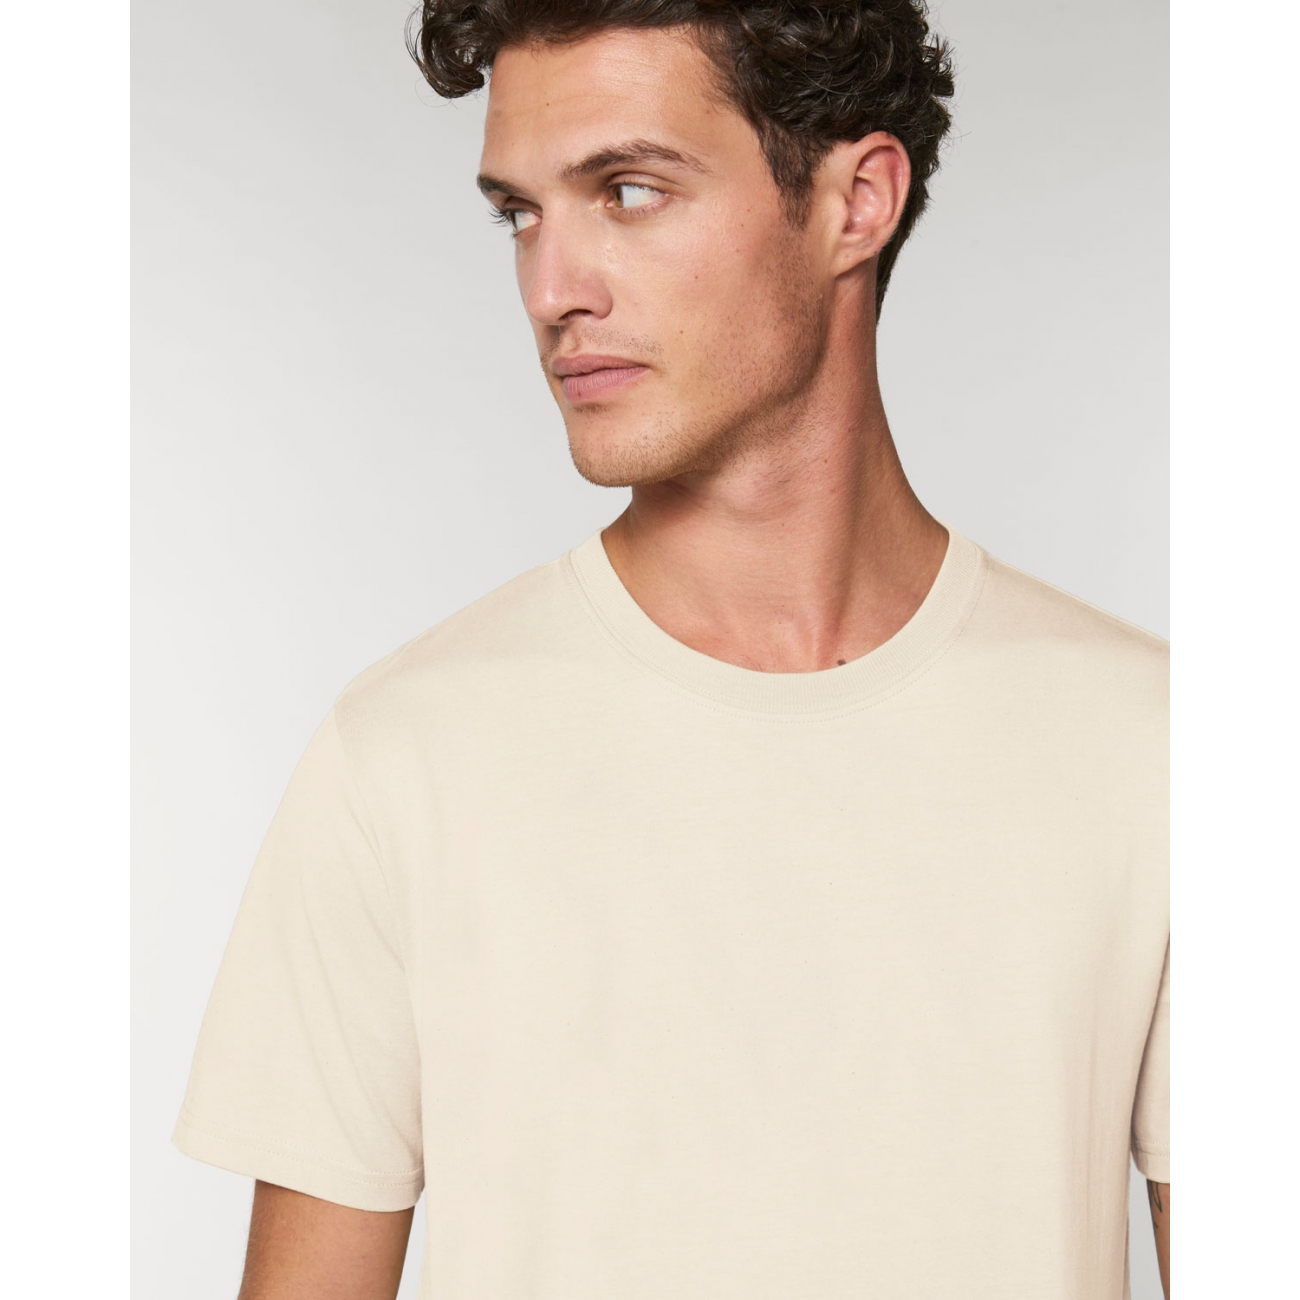 https://tee-shirt-bio.com/10227-thickbox_default/tee-shirt-homme-epais-220g-coton-bio-couleur-coton-naturel-sans-teinture.jpg